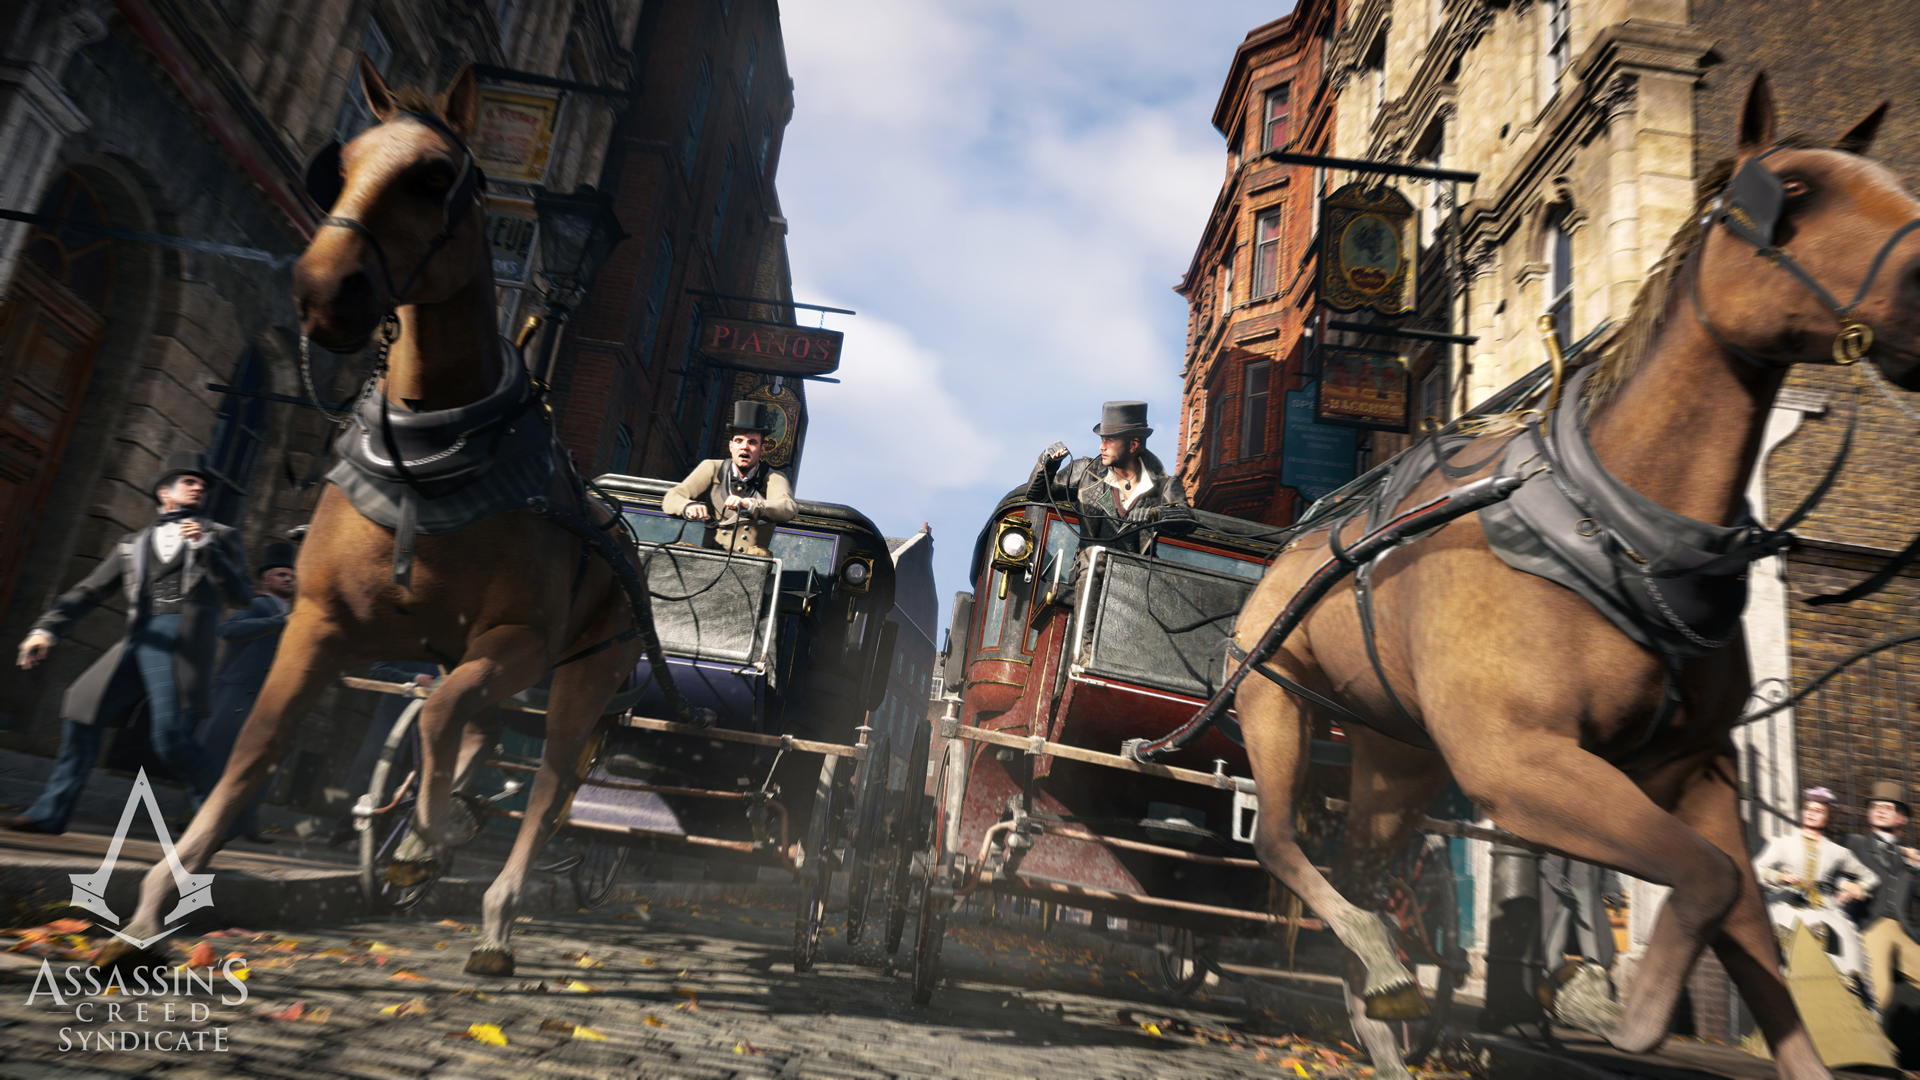 download assassin's creed syndicate gold edition v1.51 inc. all dlcs and updates repack by fitgirl singlelink iso rar part kumpulbagi diskokosmiko